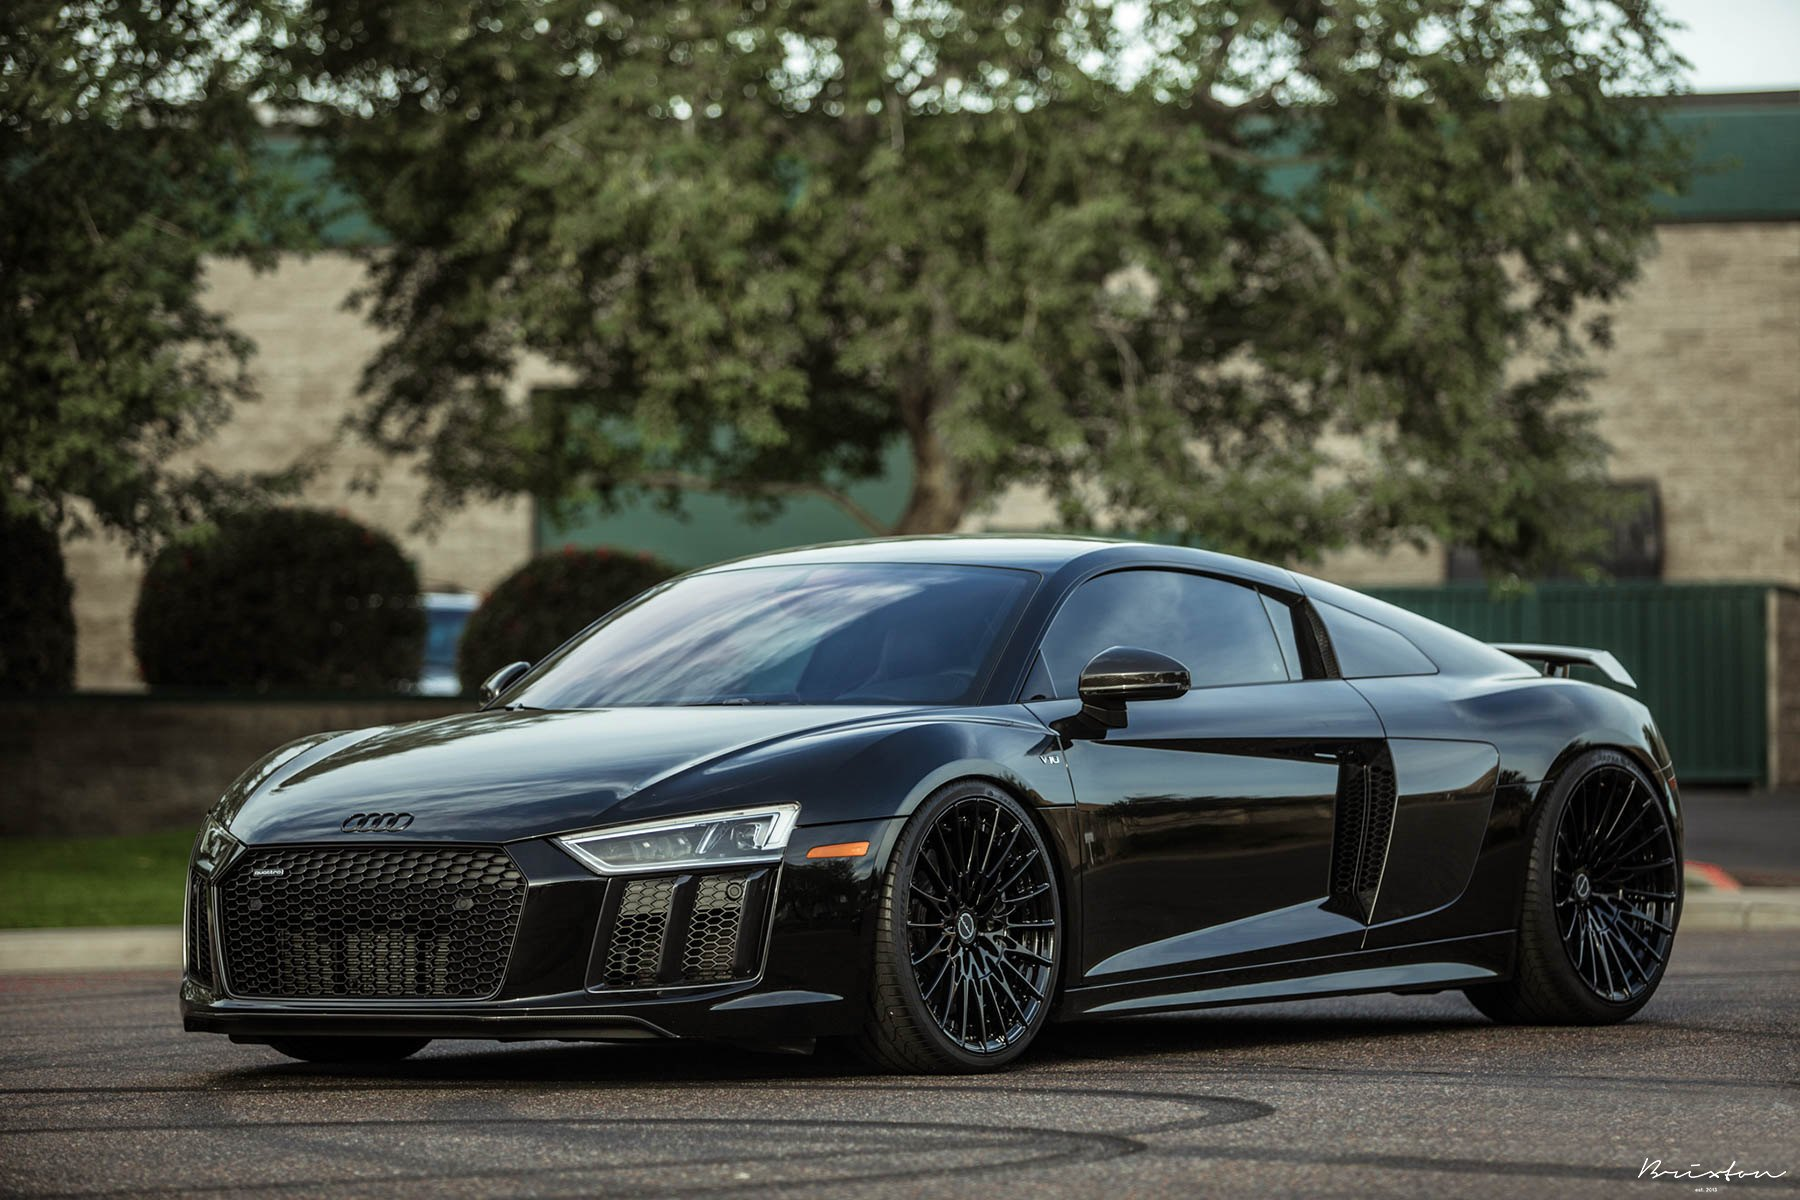 stealthy takes over black audi r8 with custom parts gallery. Black Bedroom Furniture Sets. Home Design Ideas